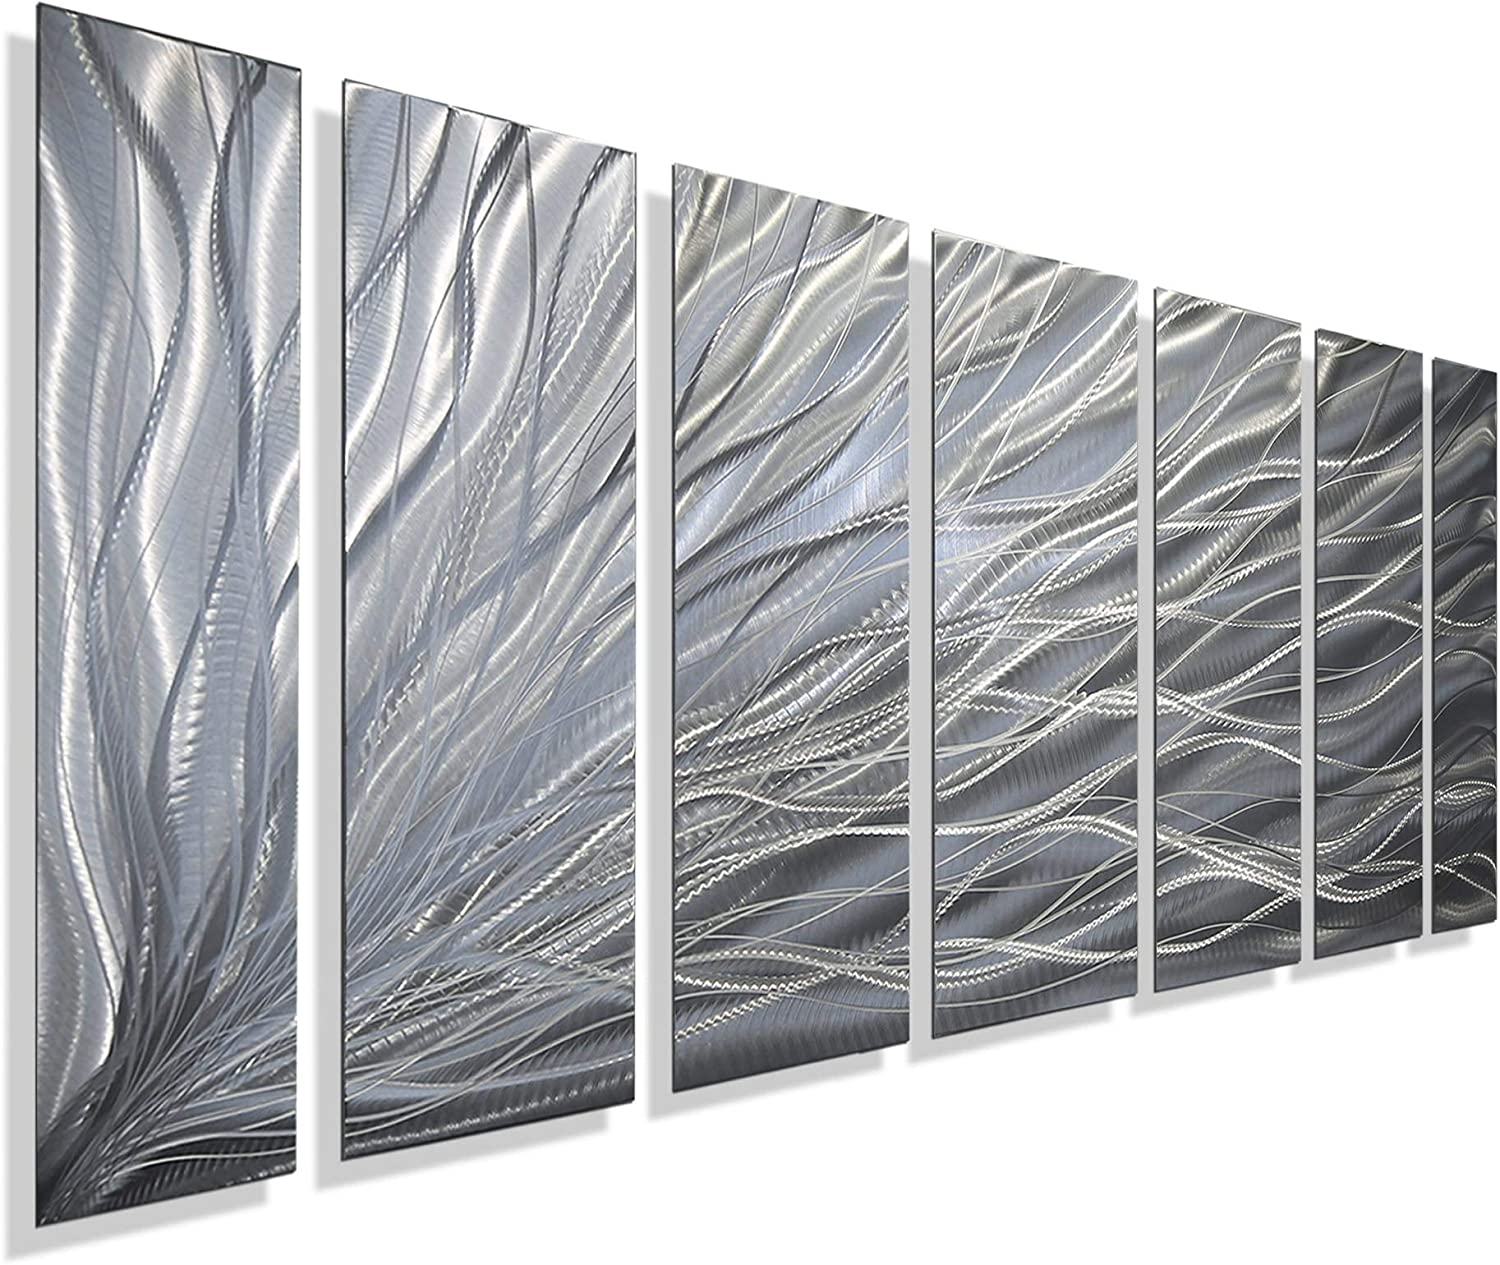 Statements2000 Abstract Mail order Fantasy Large 3D Metal NEW before selling Pane Hanging Wall